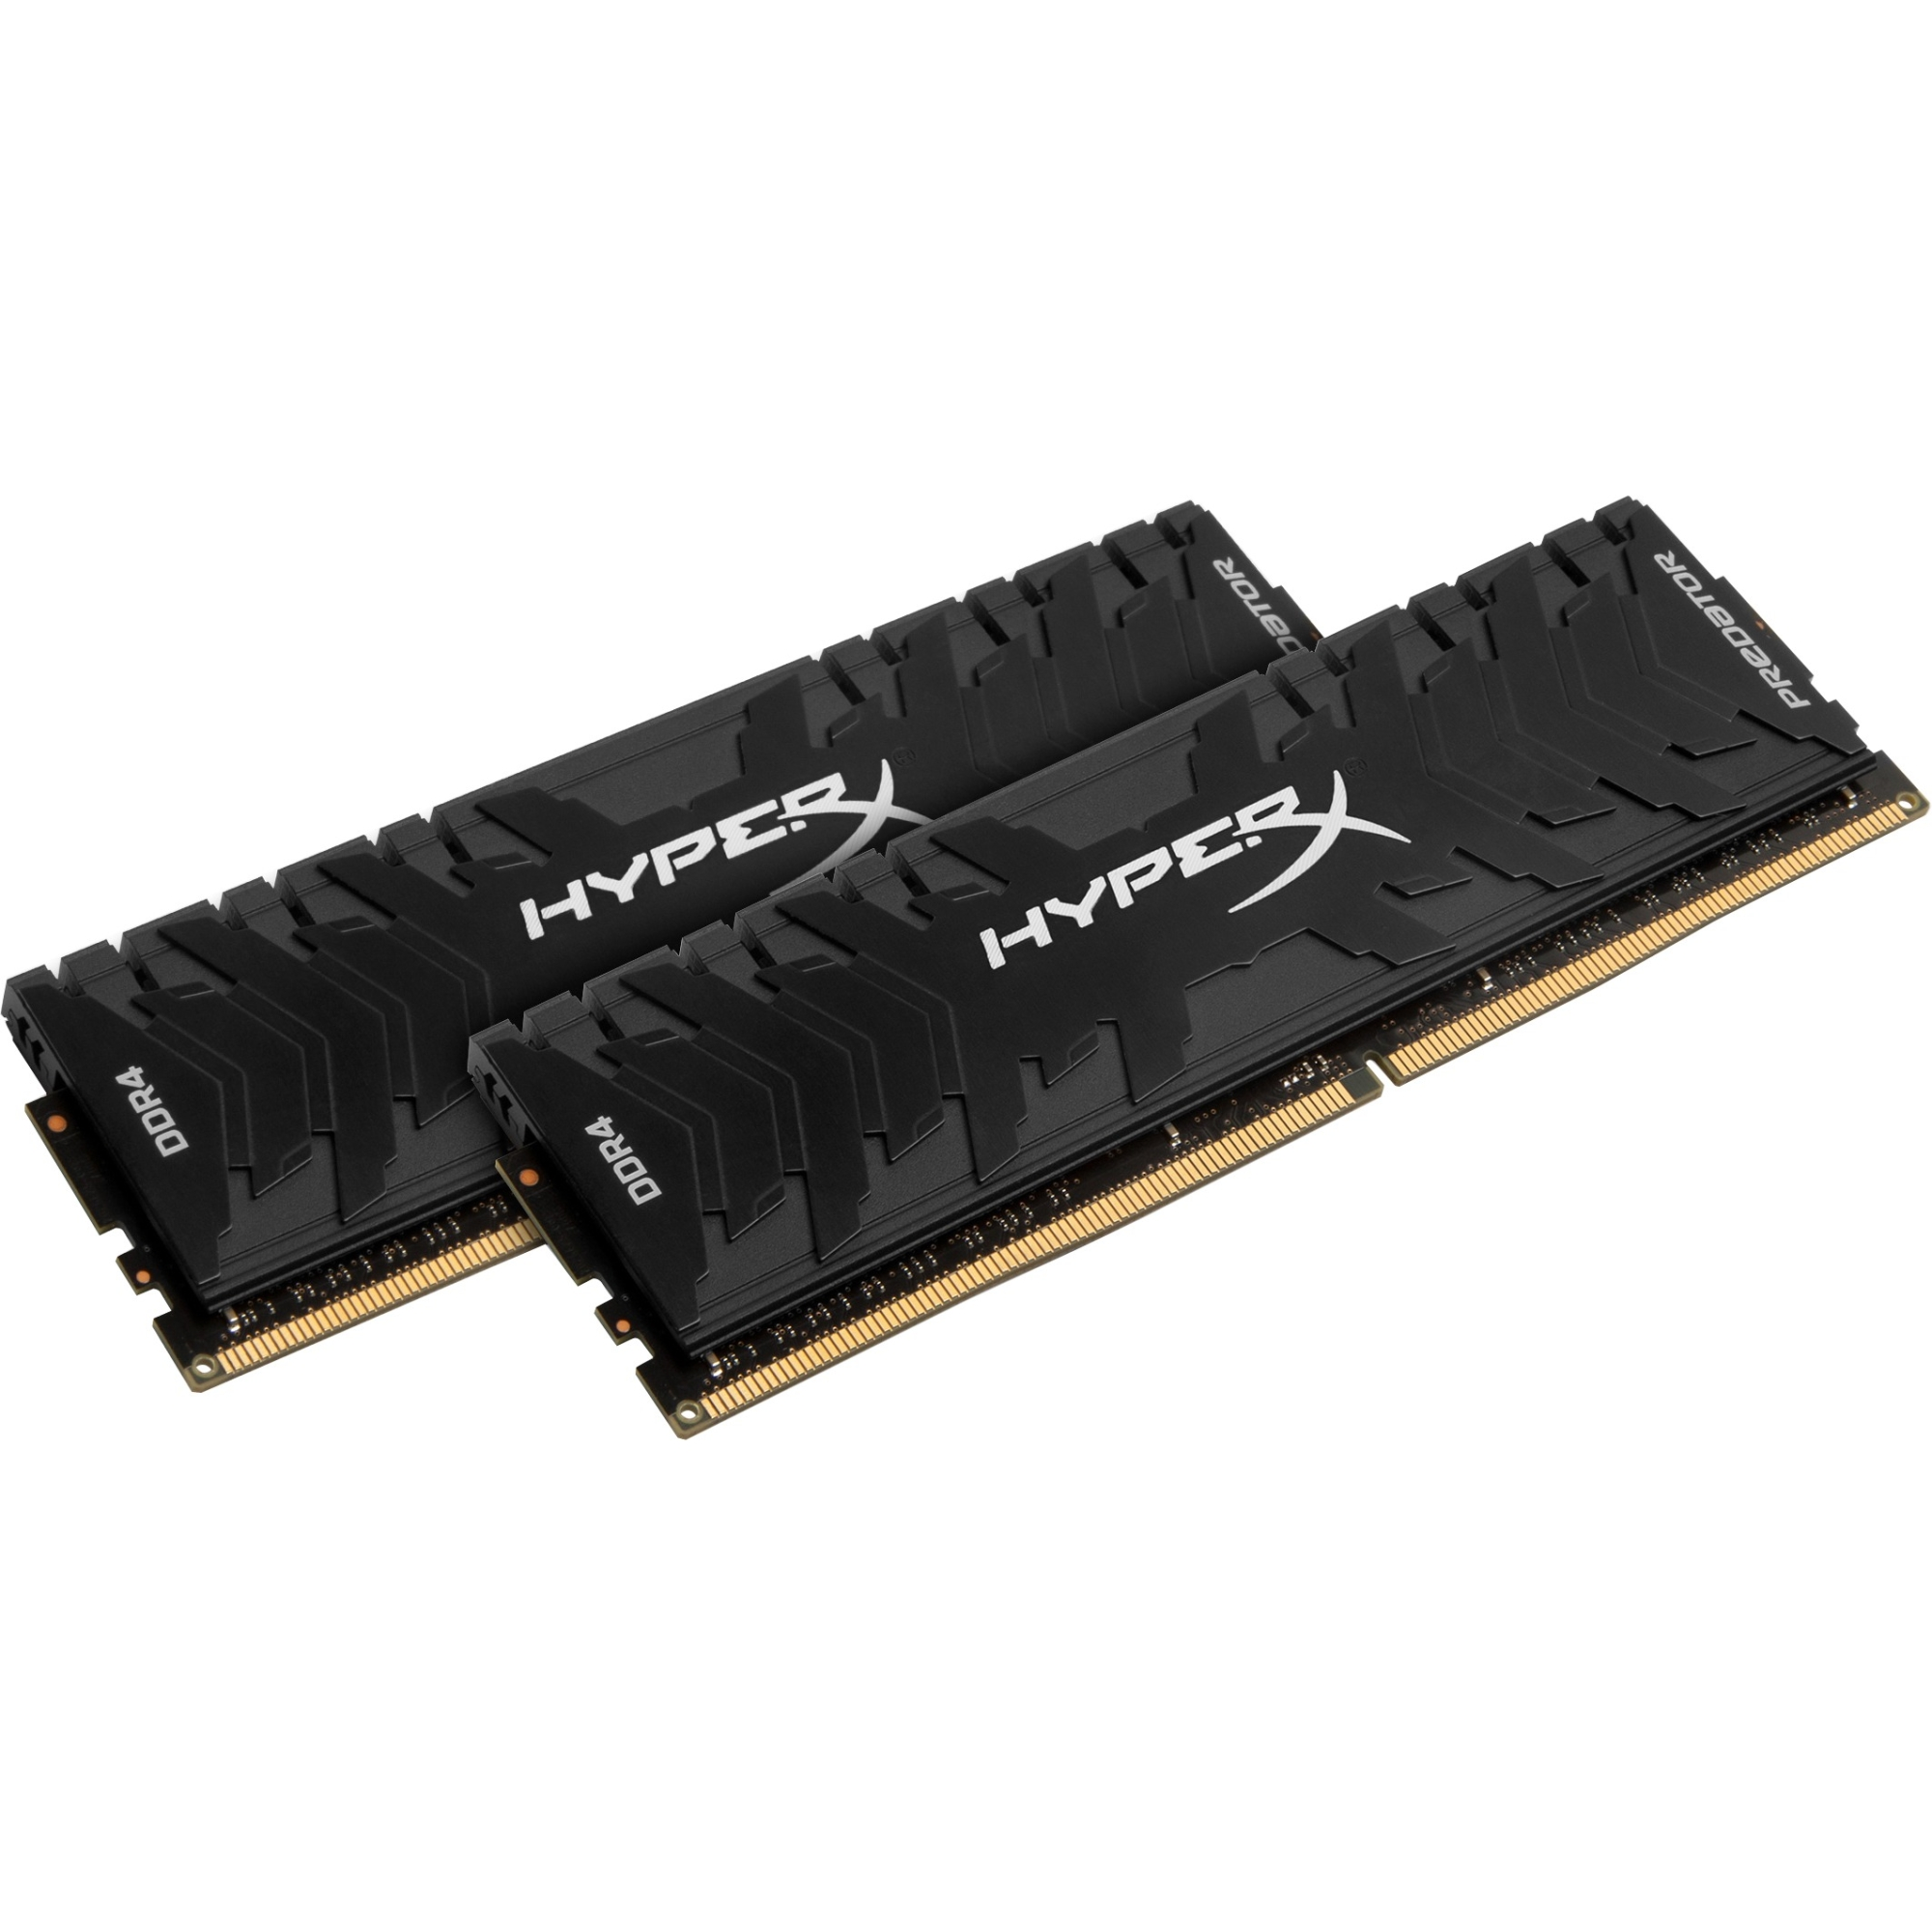 Kingston Predator Memory Black - 8GB Kit (2x4GB) - DDR4 3000MHz Intel XMP CL15 DIMM - 8 GB (2 x 4 GB) - DDR4 SDRAM - 3